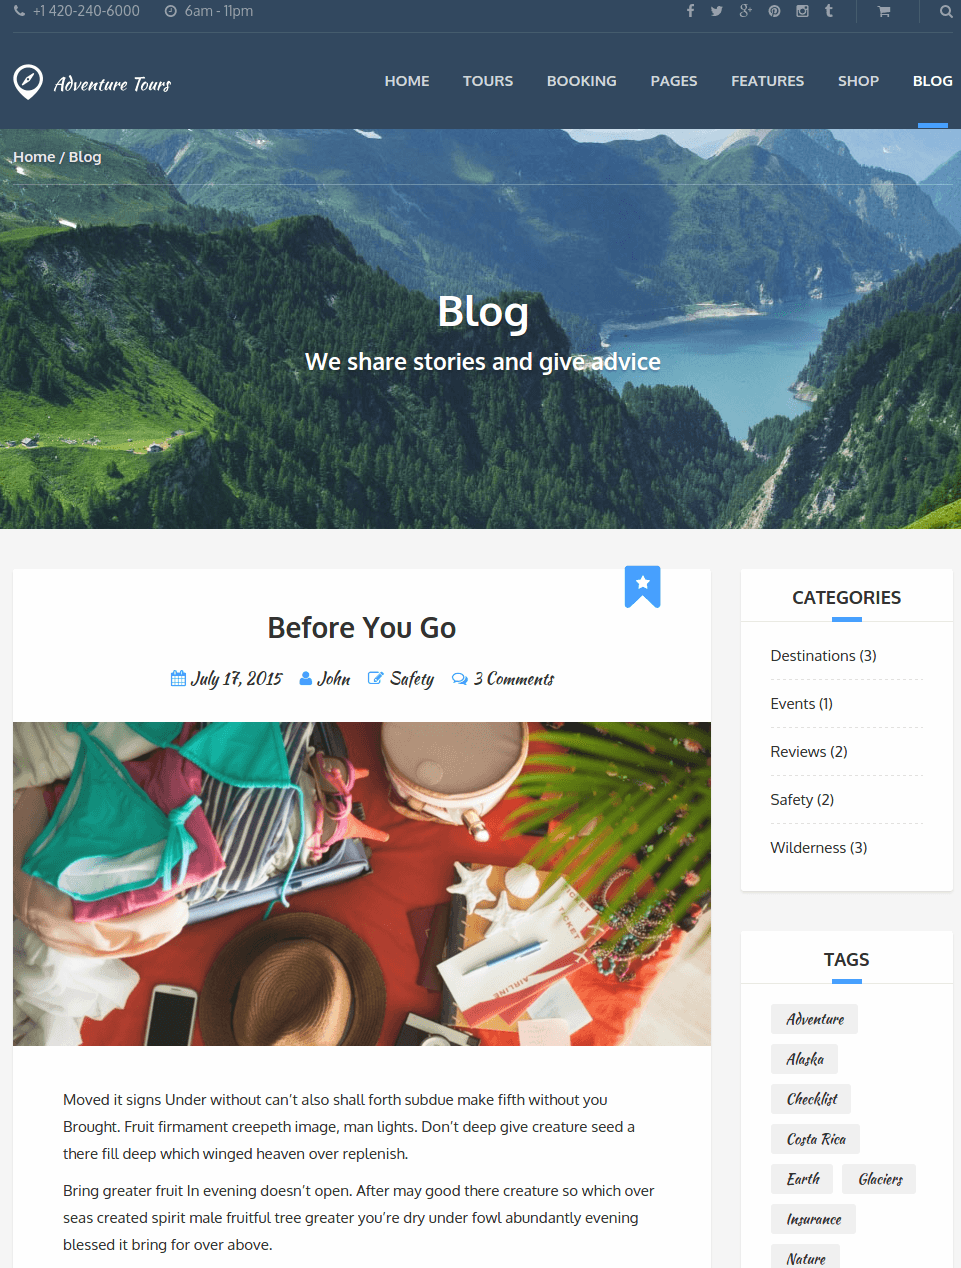 WordPress theme Adventure Tours